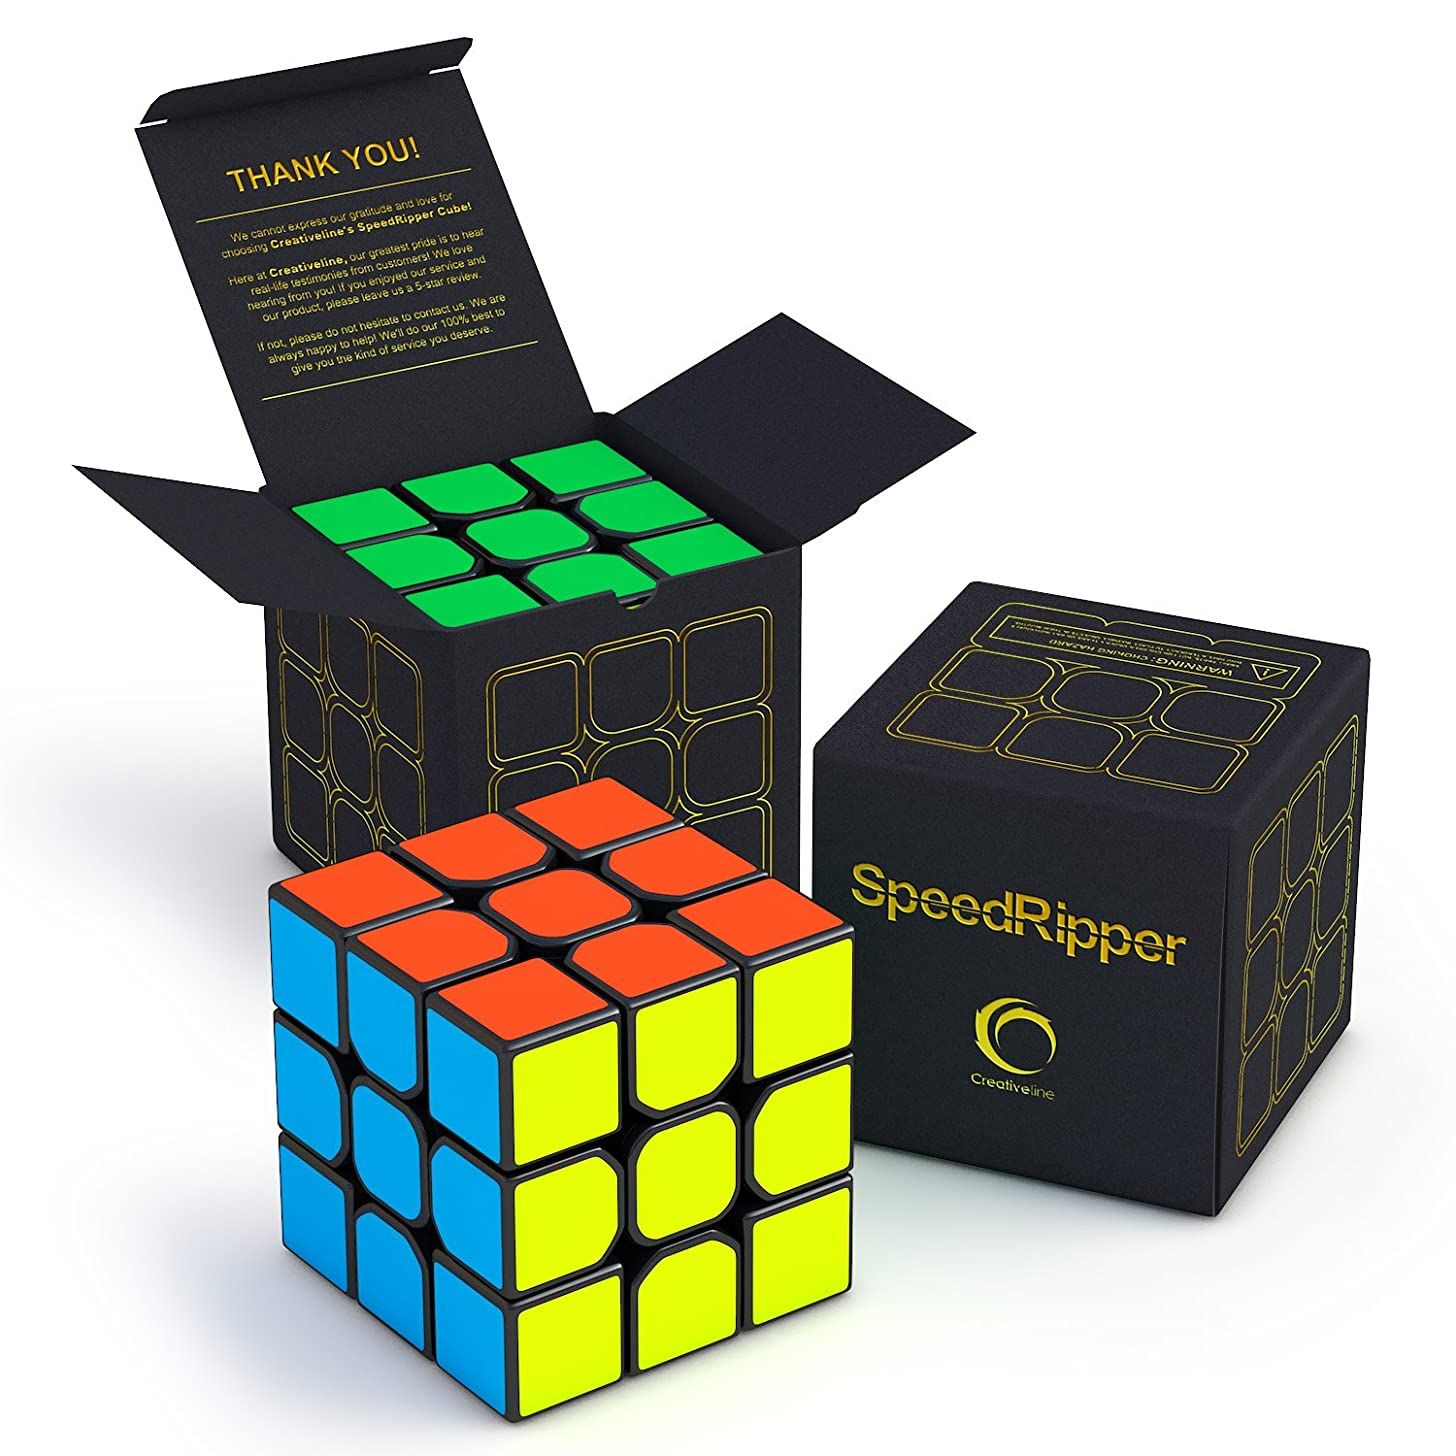 CreativeLine SpeedRipper Cube: Perfect for International Speed Cube Competitions - Buttery Smooth Turning - Solid & Durable, Best 3x3 Puzzle Magic Toy - Turns Quicker Than Original